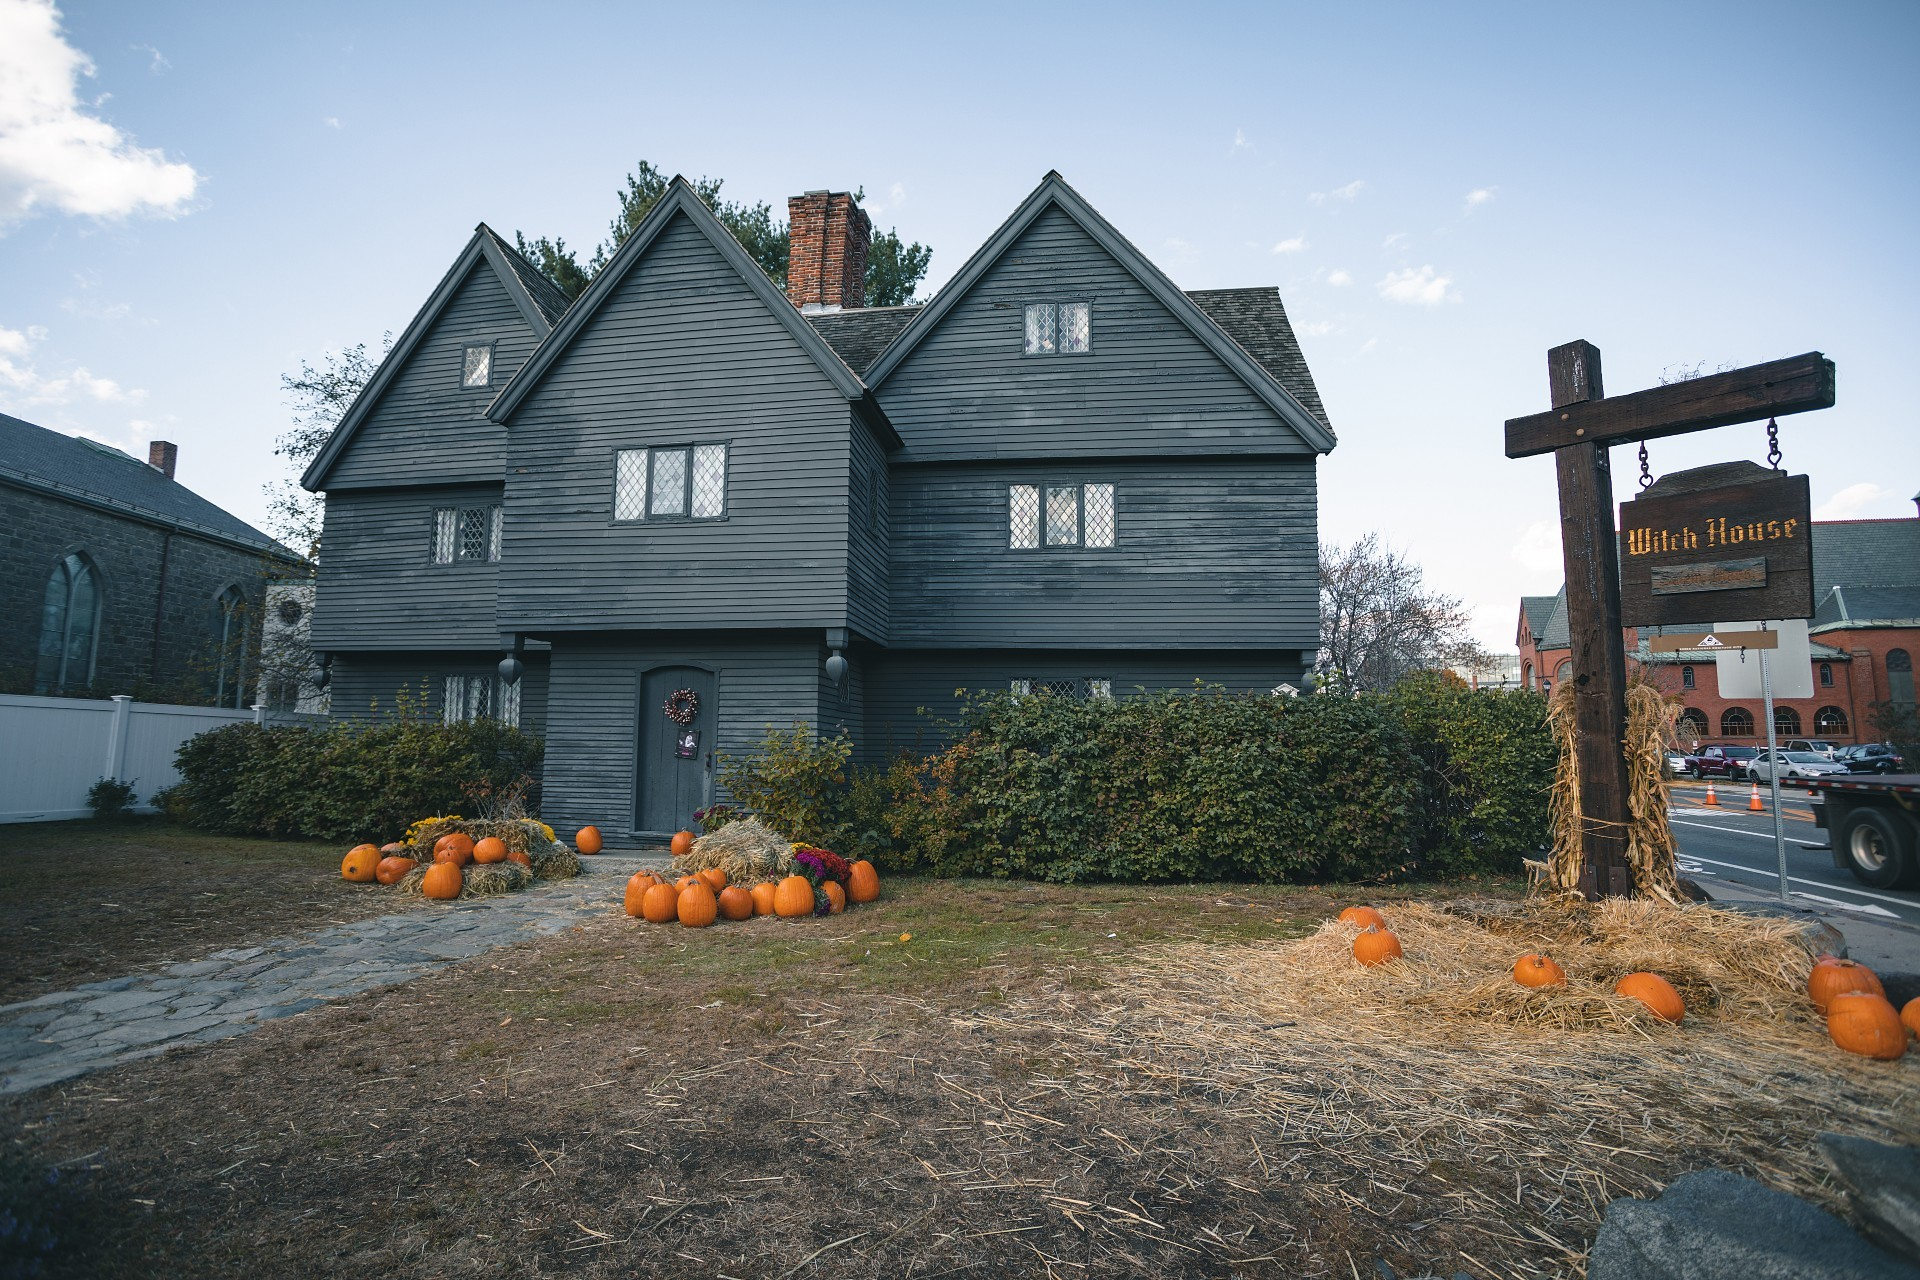 Salem, Mass Witch House